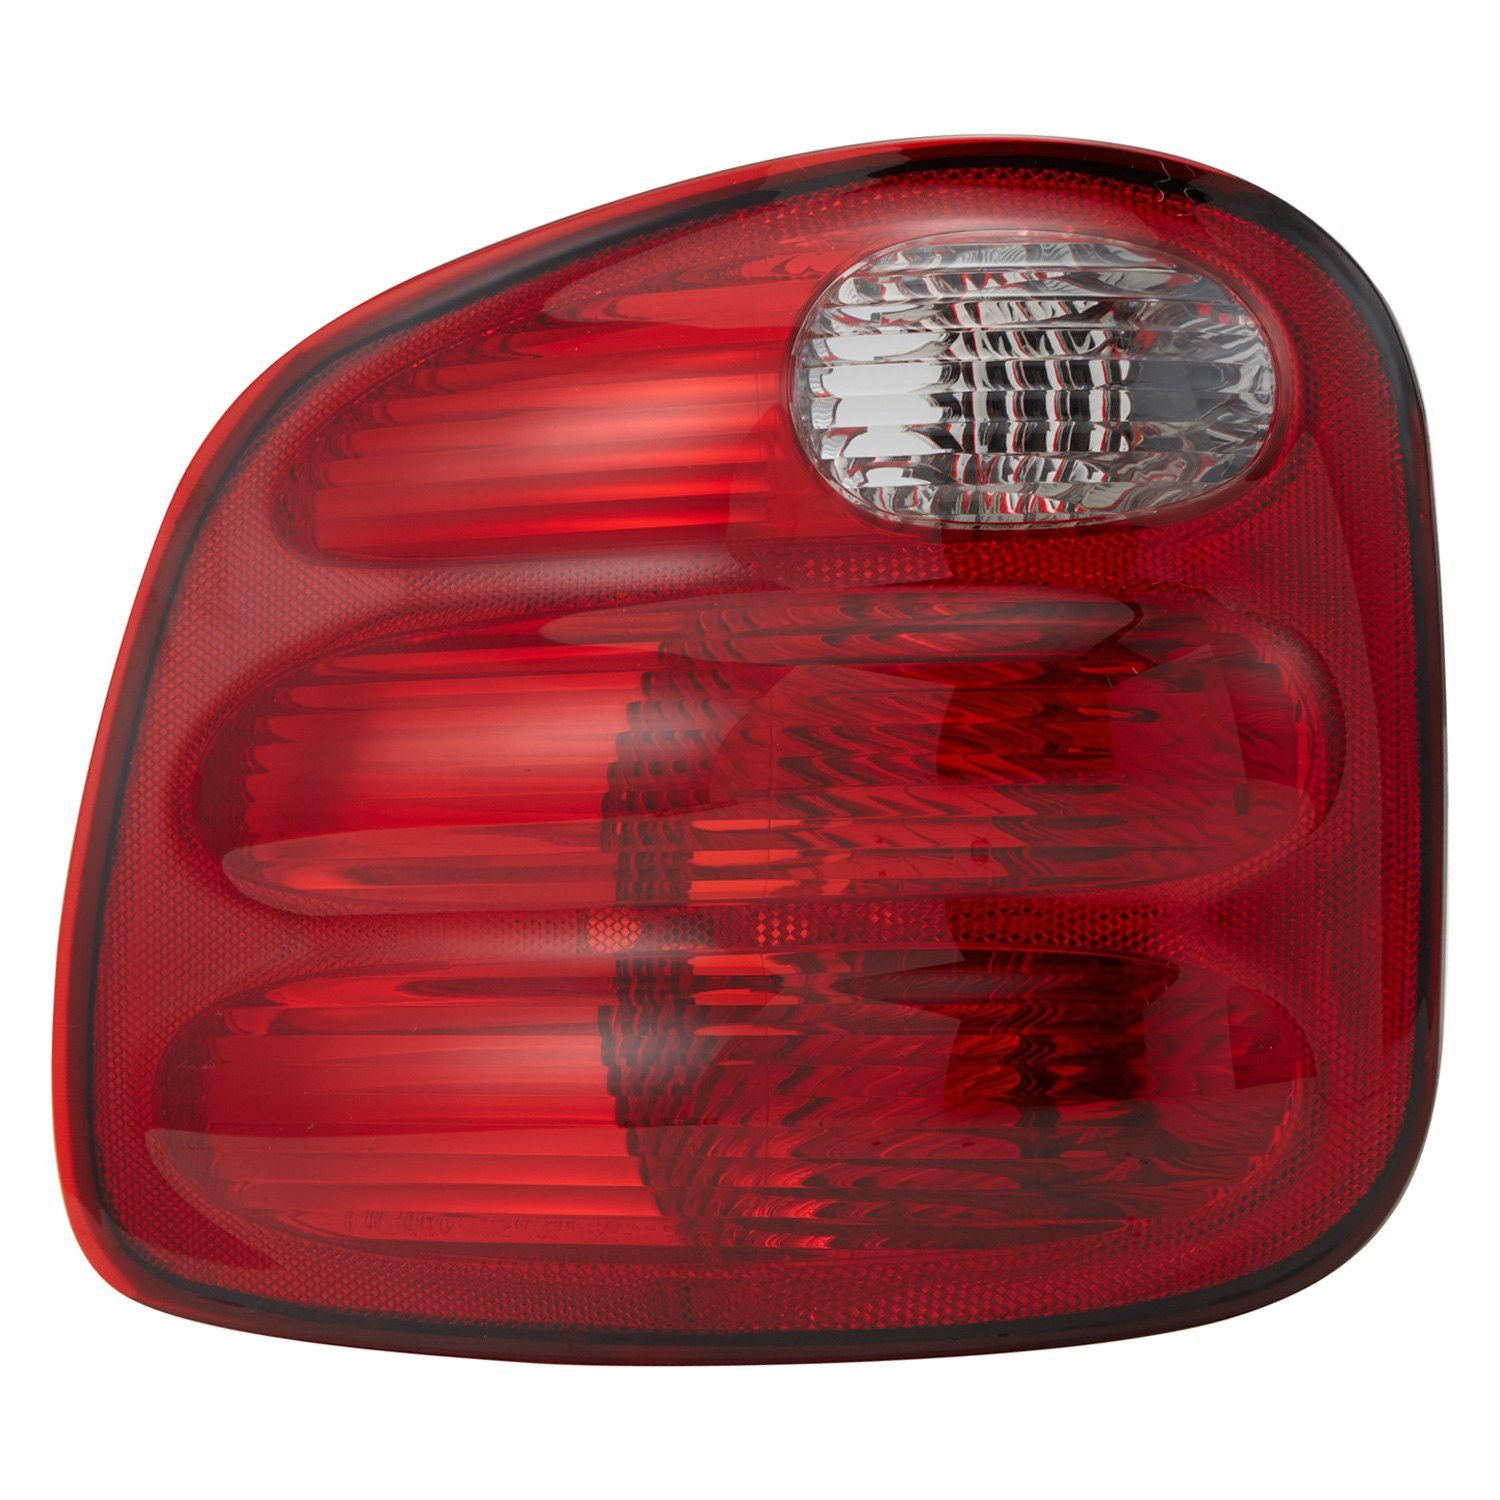 tyc ford f 150 2001 2003 replacement tail light. Black Bedroom Furniture Sets. Home Design Ideas